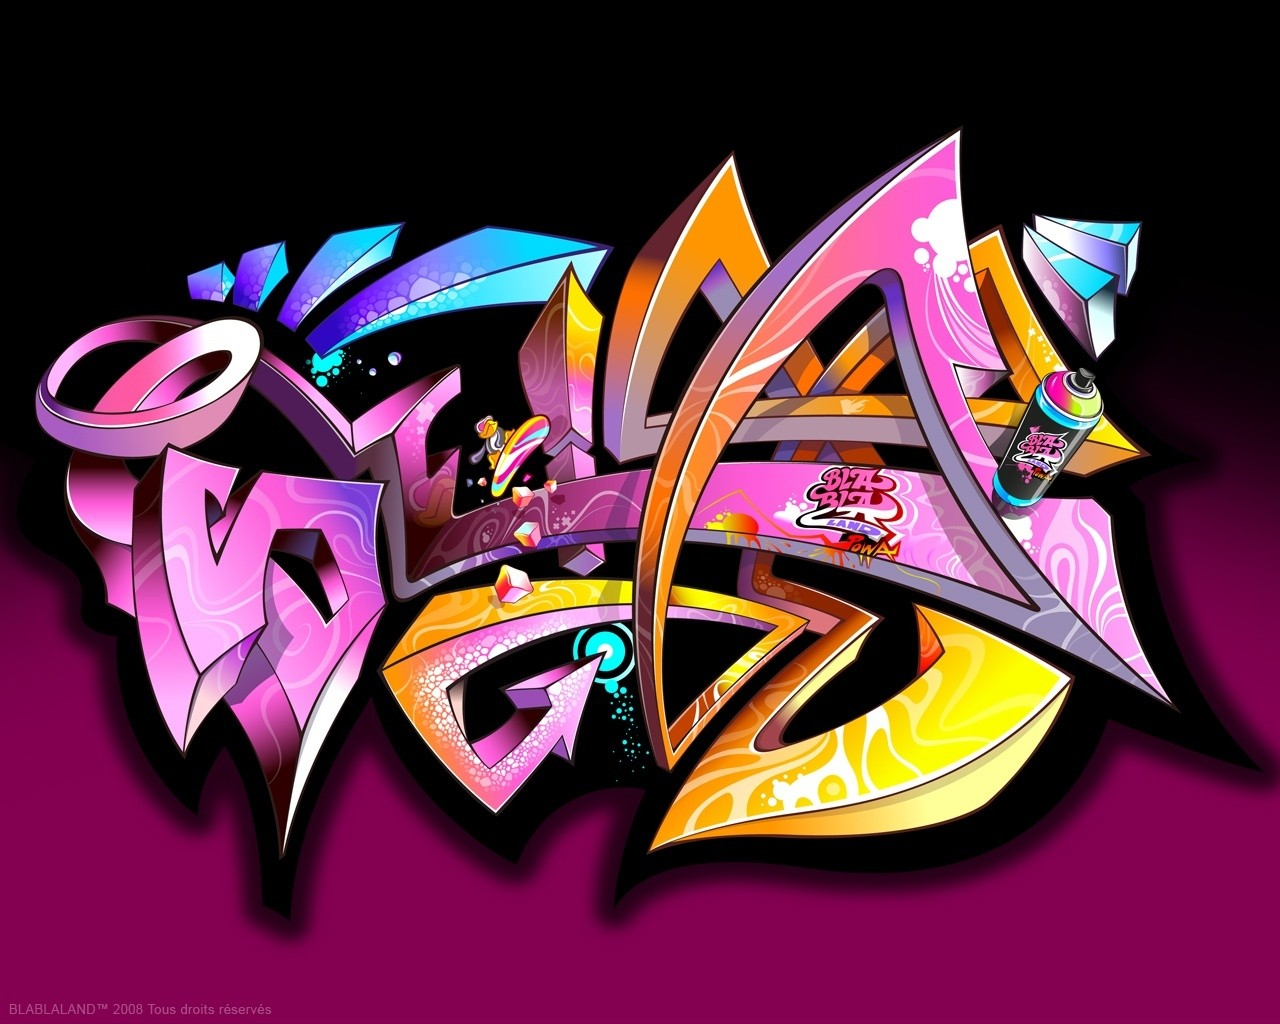 Abstract Graffiti Wallpaper 1280x1024 Abstract Graffiti 1280x1024